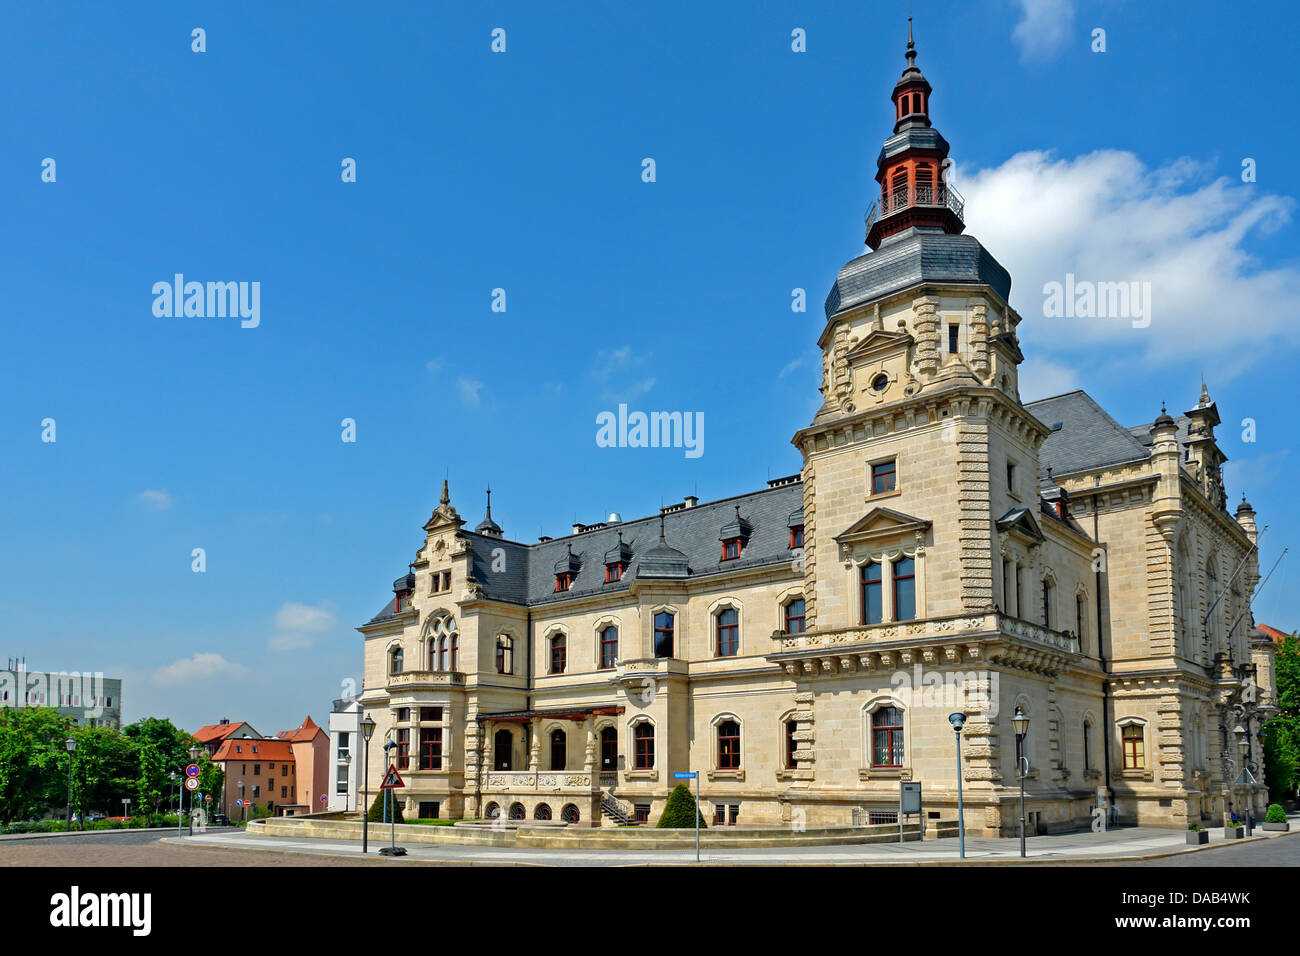 Europe, Germany, Saxony-Anhalt, Merseburg, Georgstrasse, state house, architecture, building, construction, tower, - Stock Image